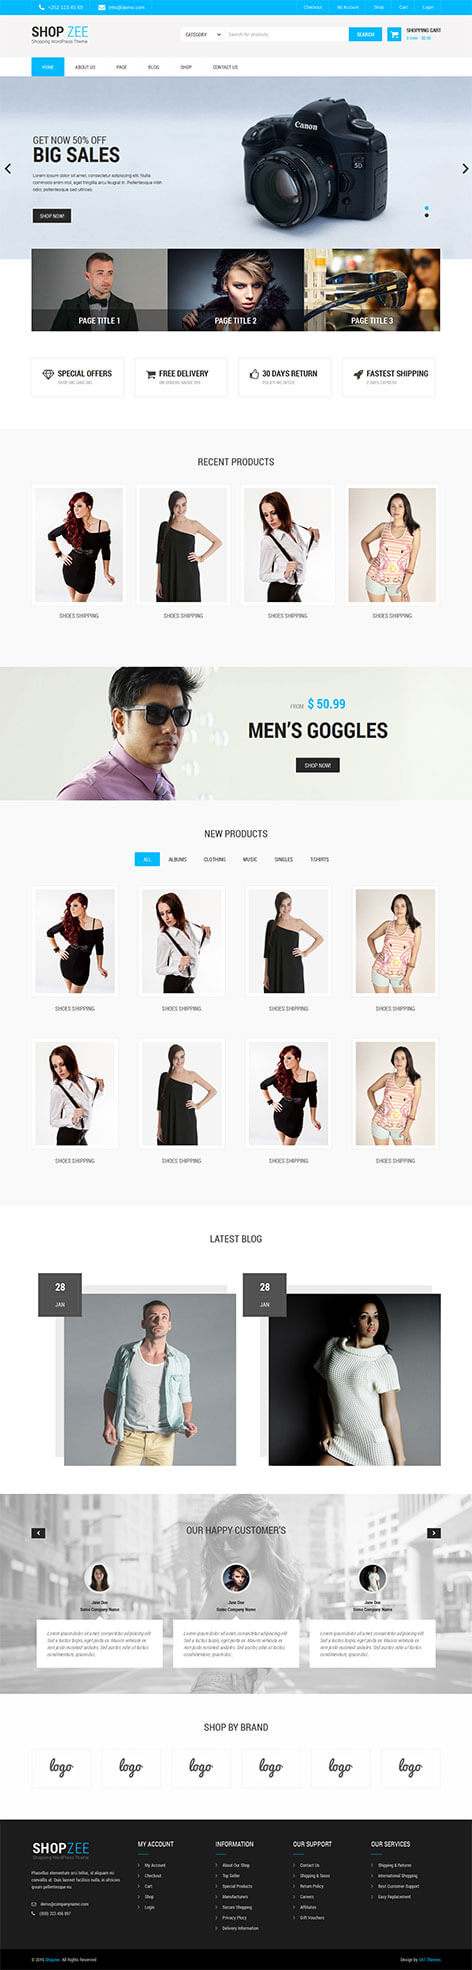 ecommerce wordpress theme - Shopzee